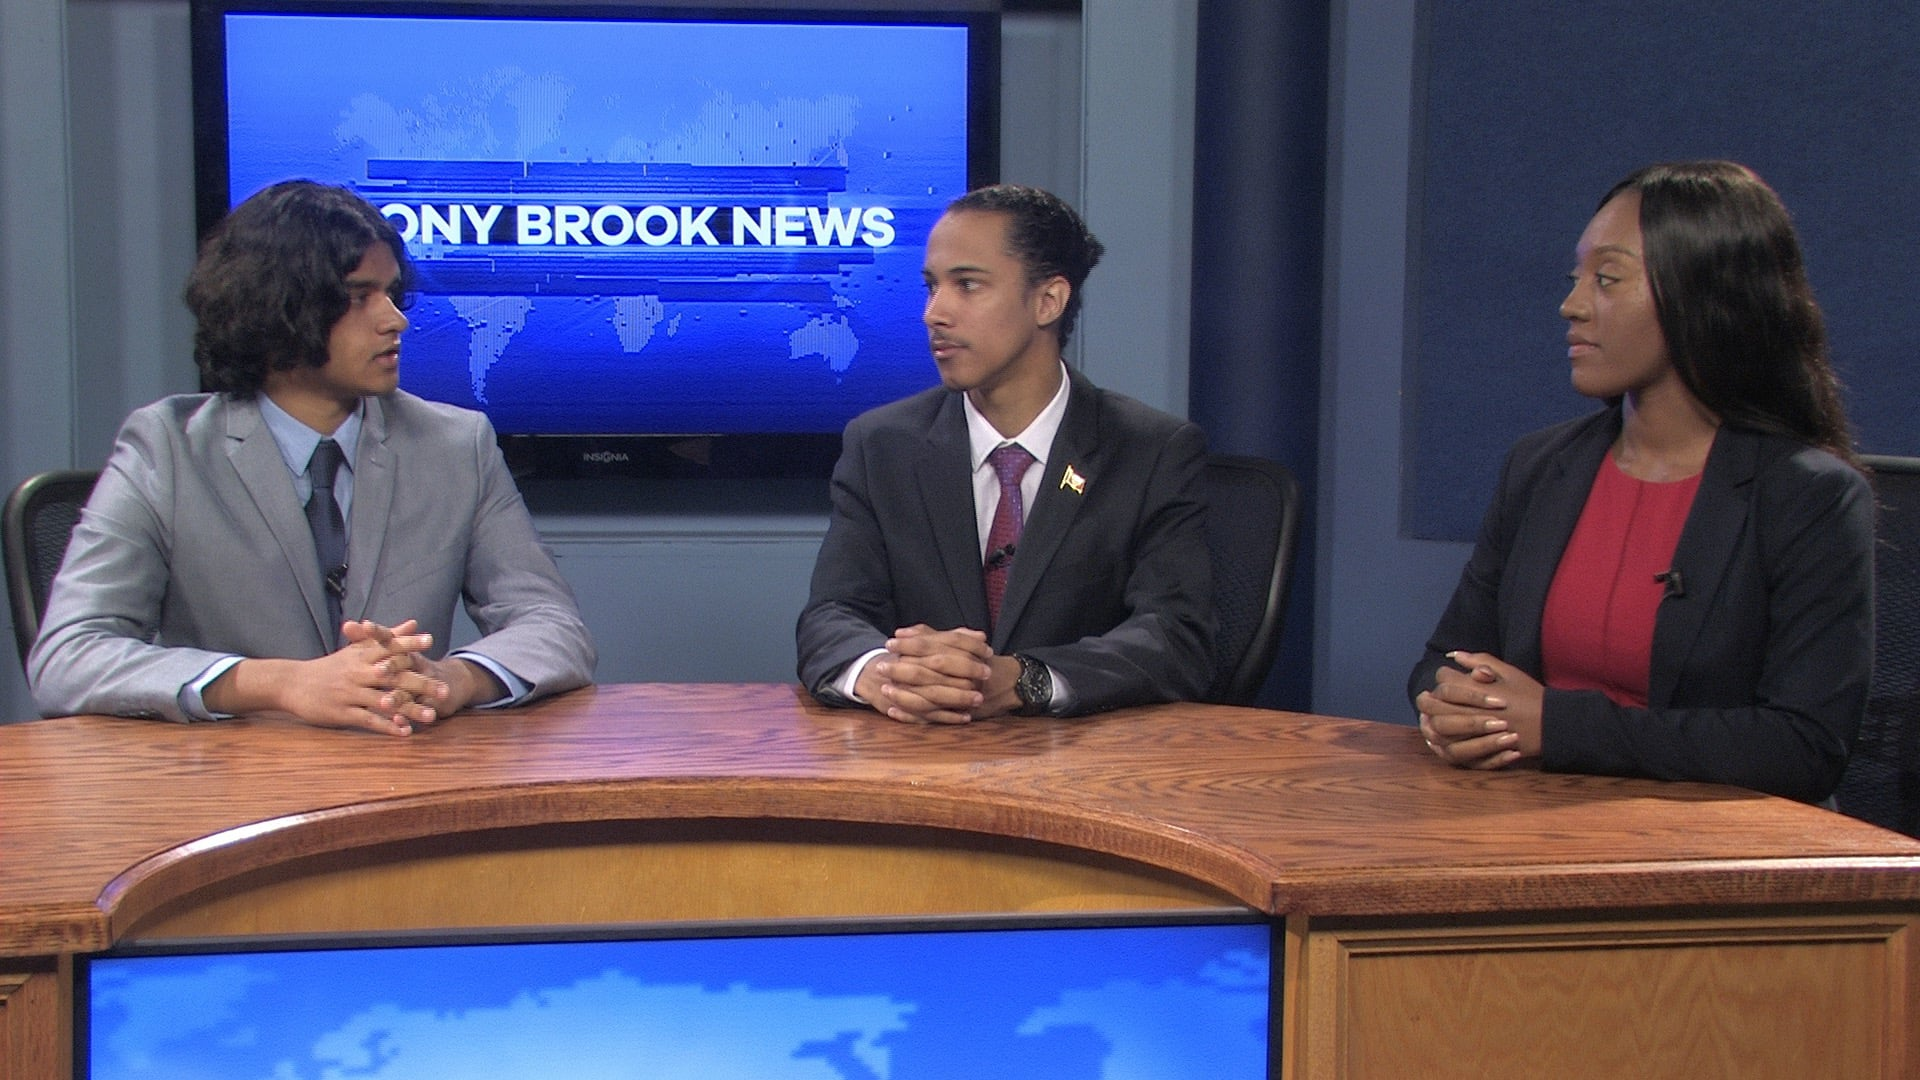 Stony Brook News – September 25, 2017